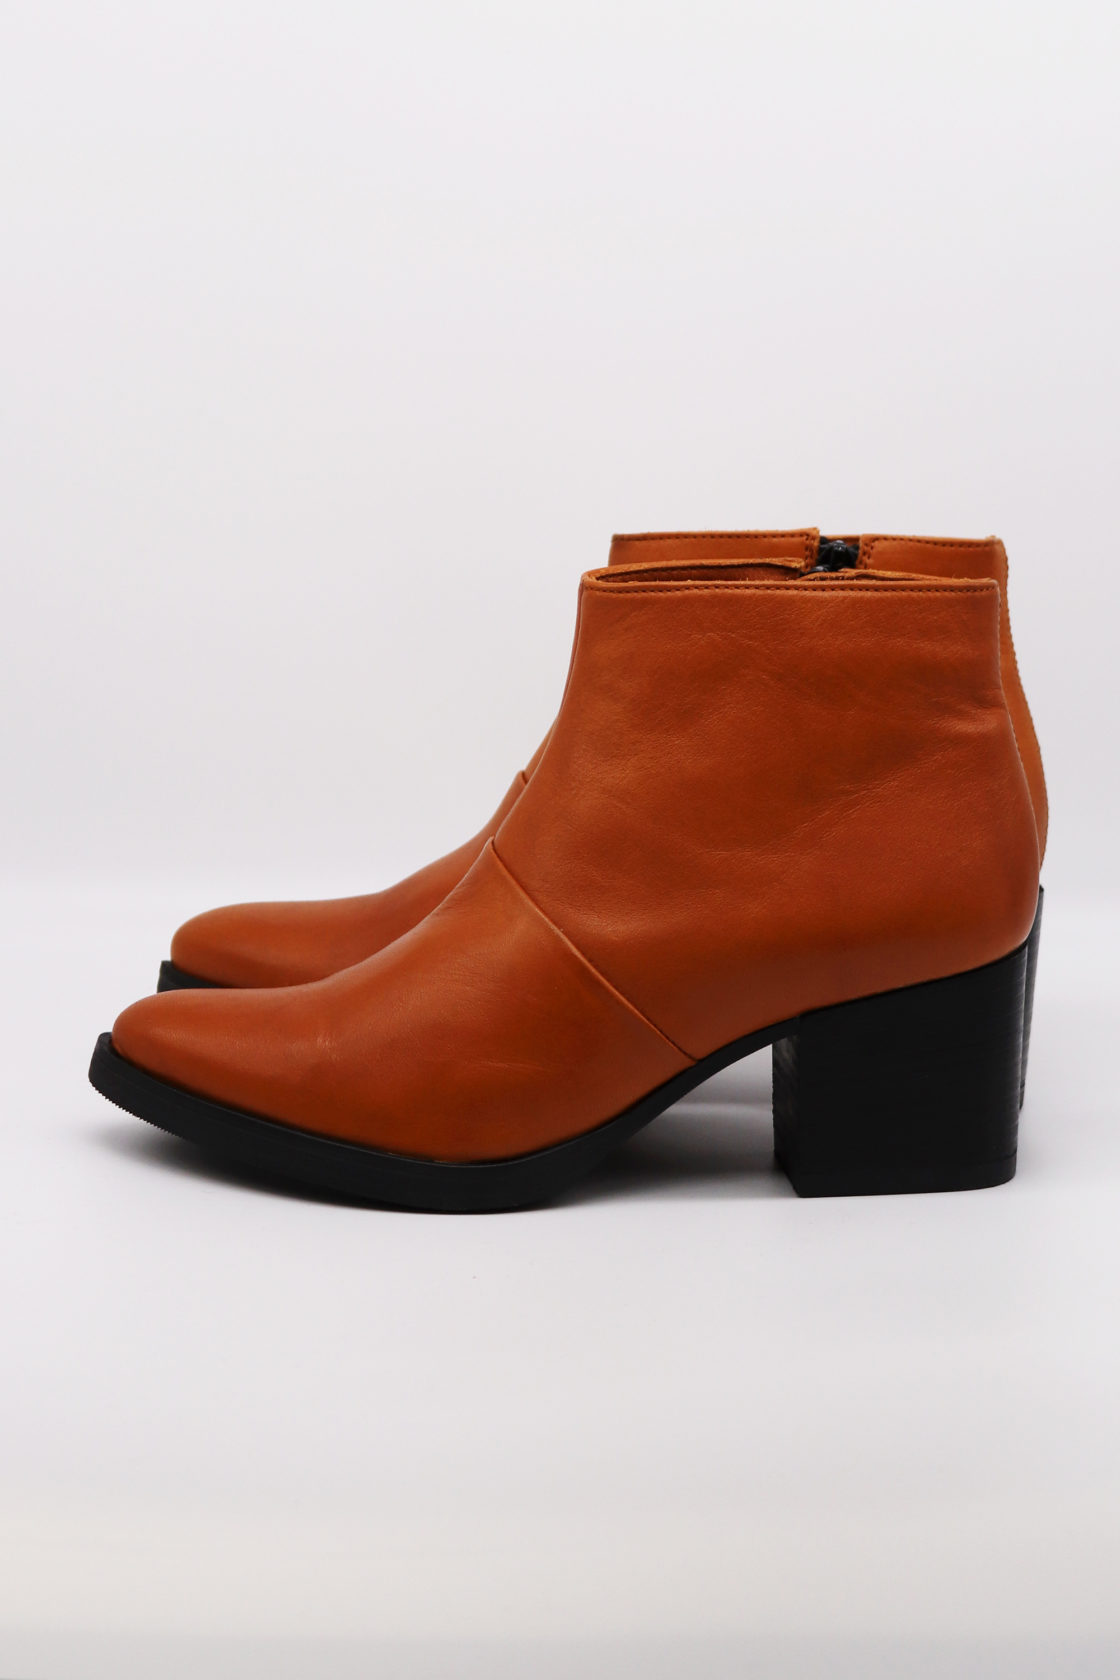 Roberta Organic Fashion Werner Ankle Boots Cognac 5